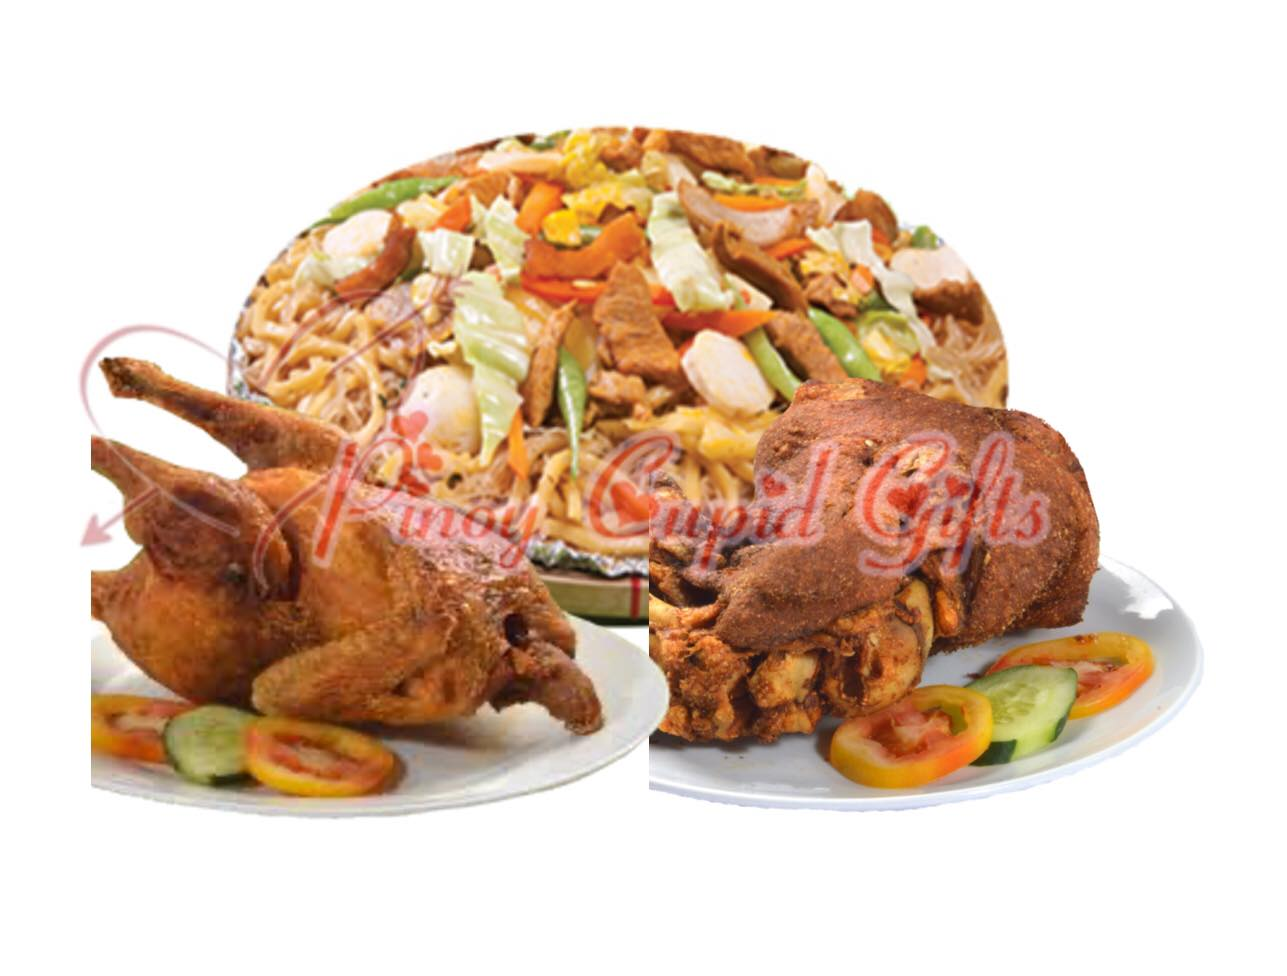 Pancit Miki-Bihon (6-10), Whole Fried Chicken, Crispy Pata-Regular